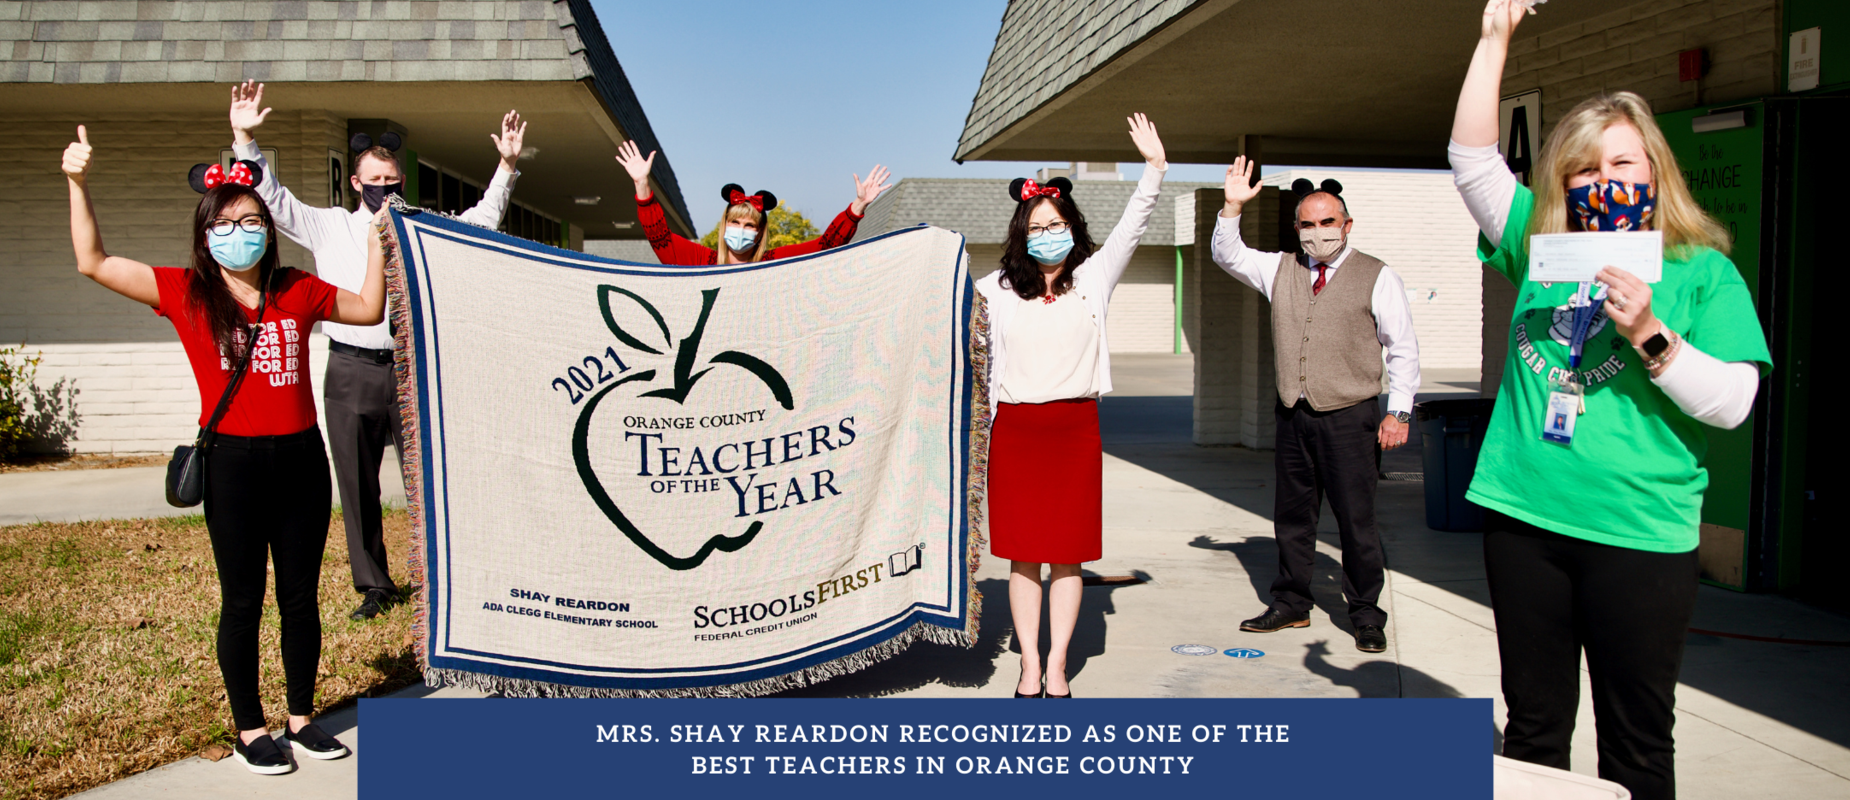 Mrs. Shay Reardon celebrated as one of Orange County's Teacher of the Year winner